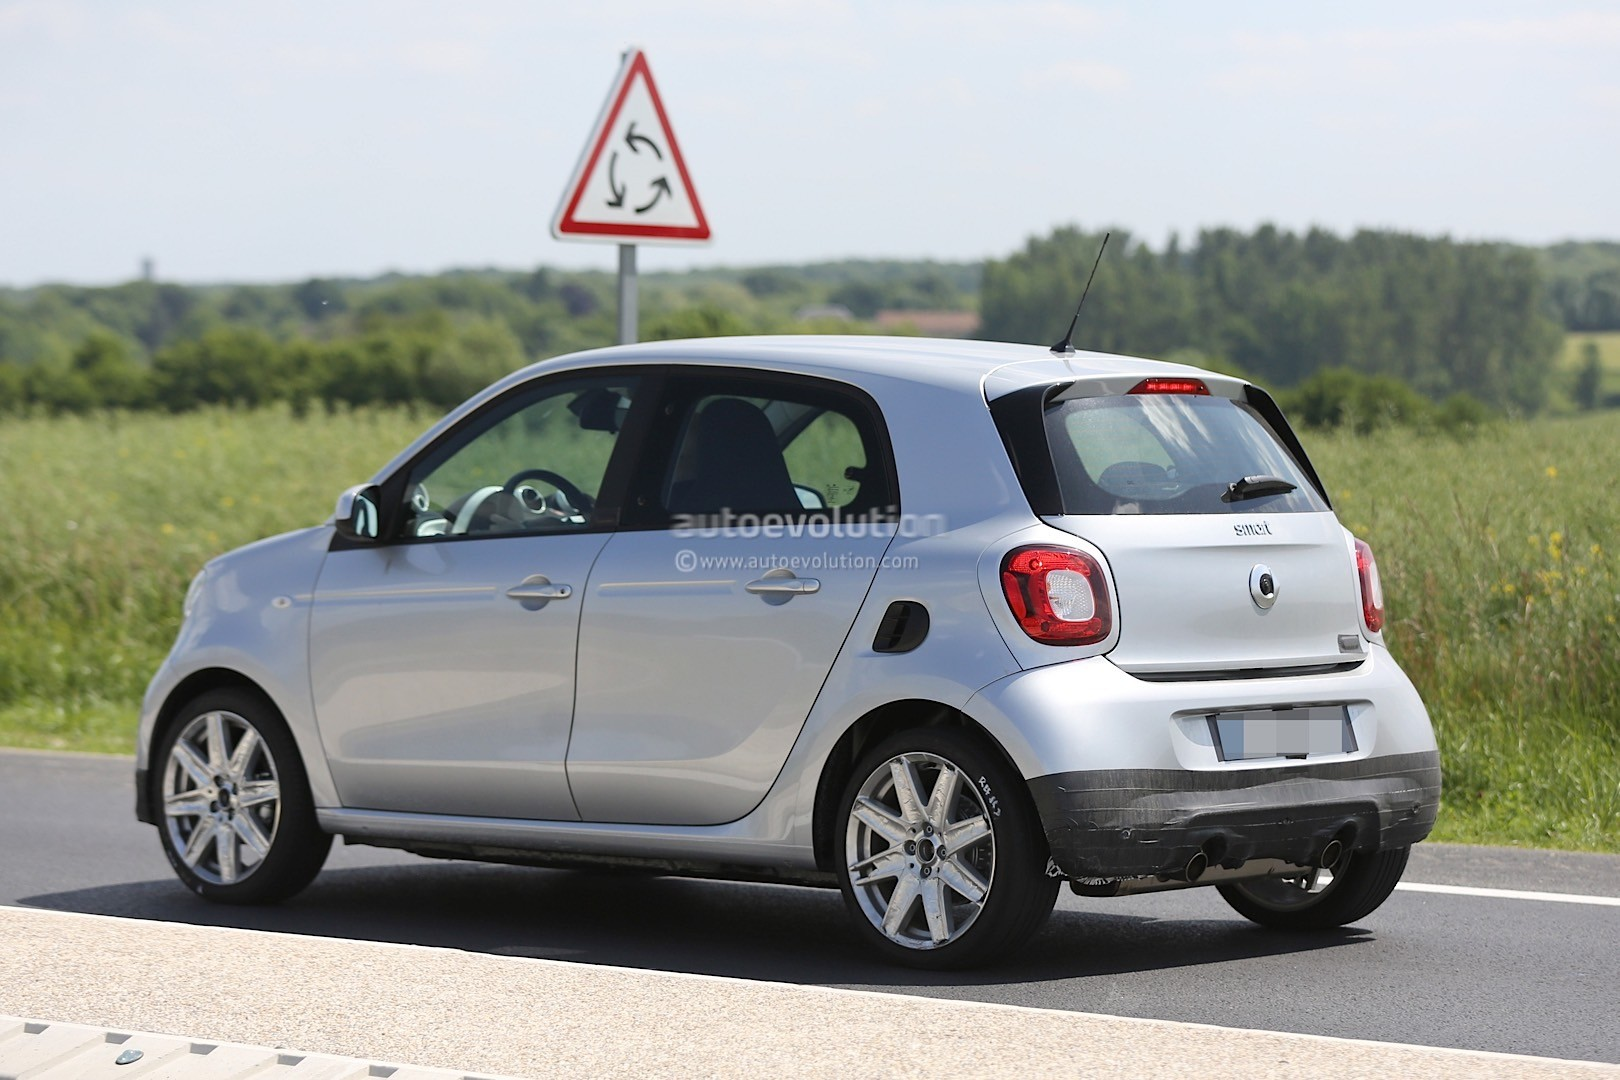 Spyshots: 2016 Smart Forfour Brabus Looks Ready to Rumble ...